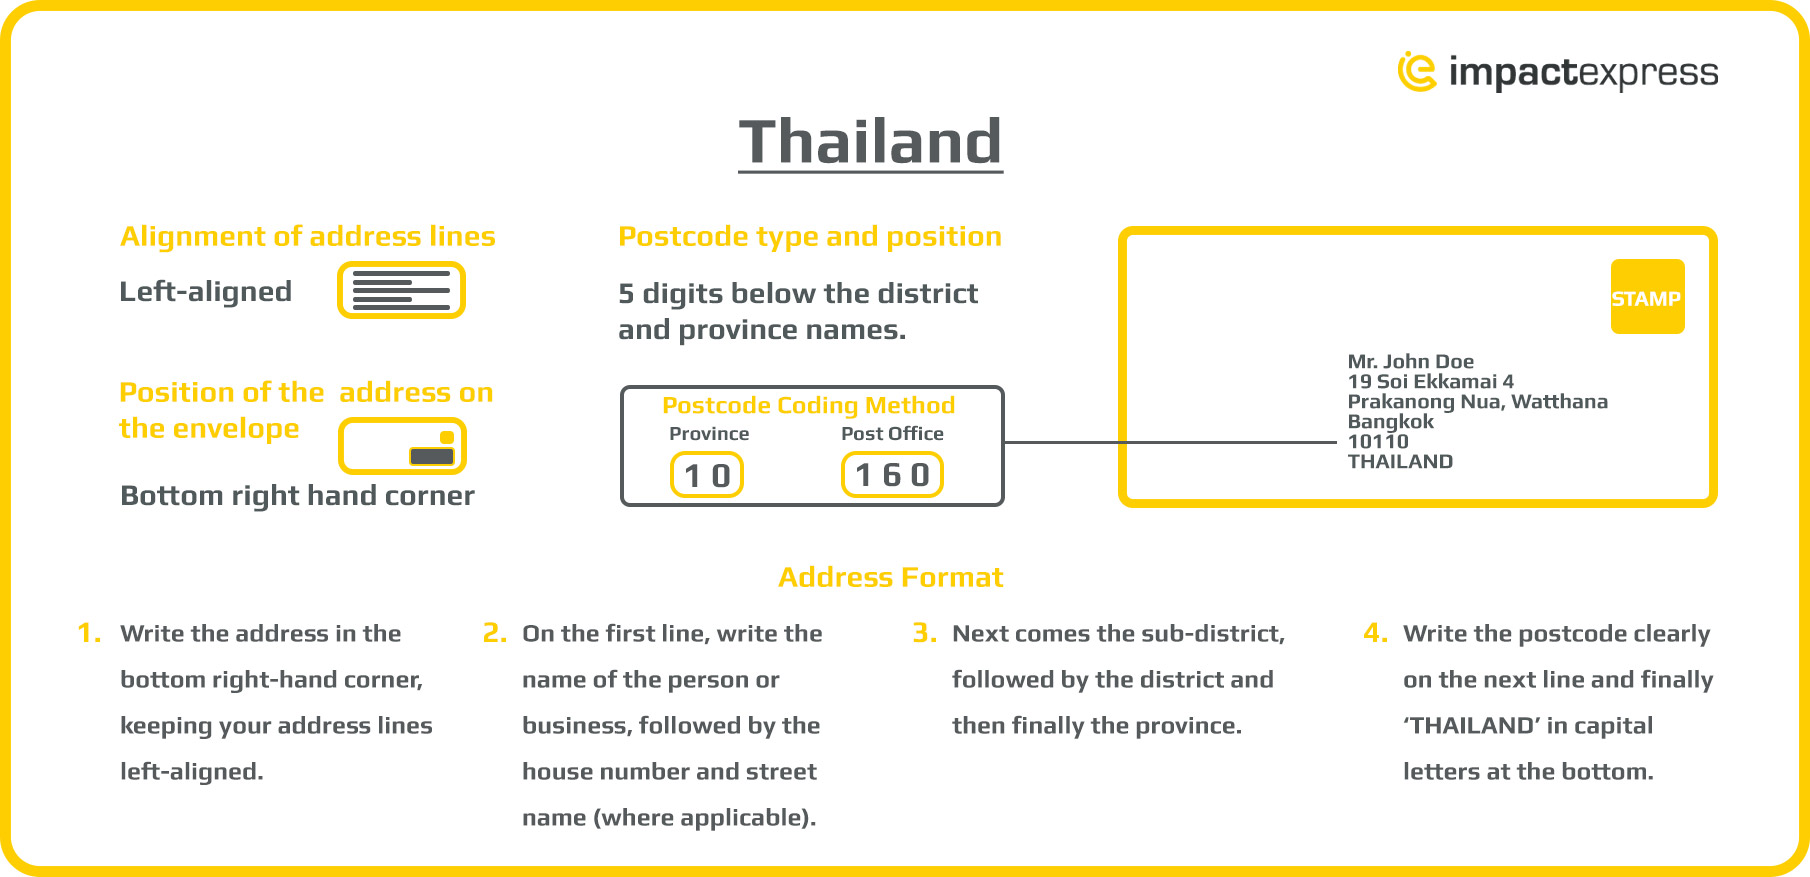 How to address a parcel to Thailand infographic